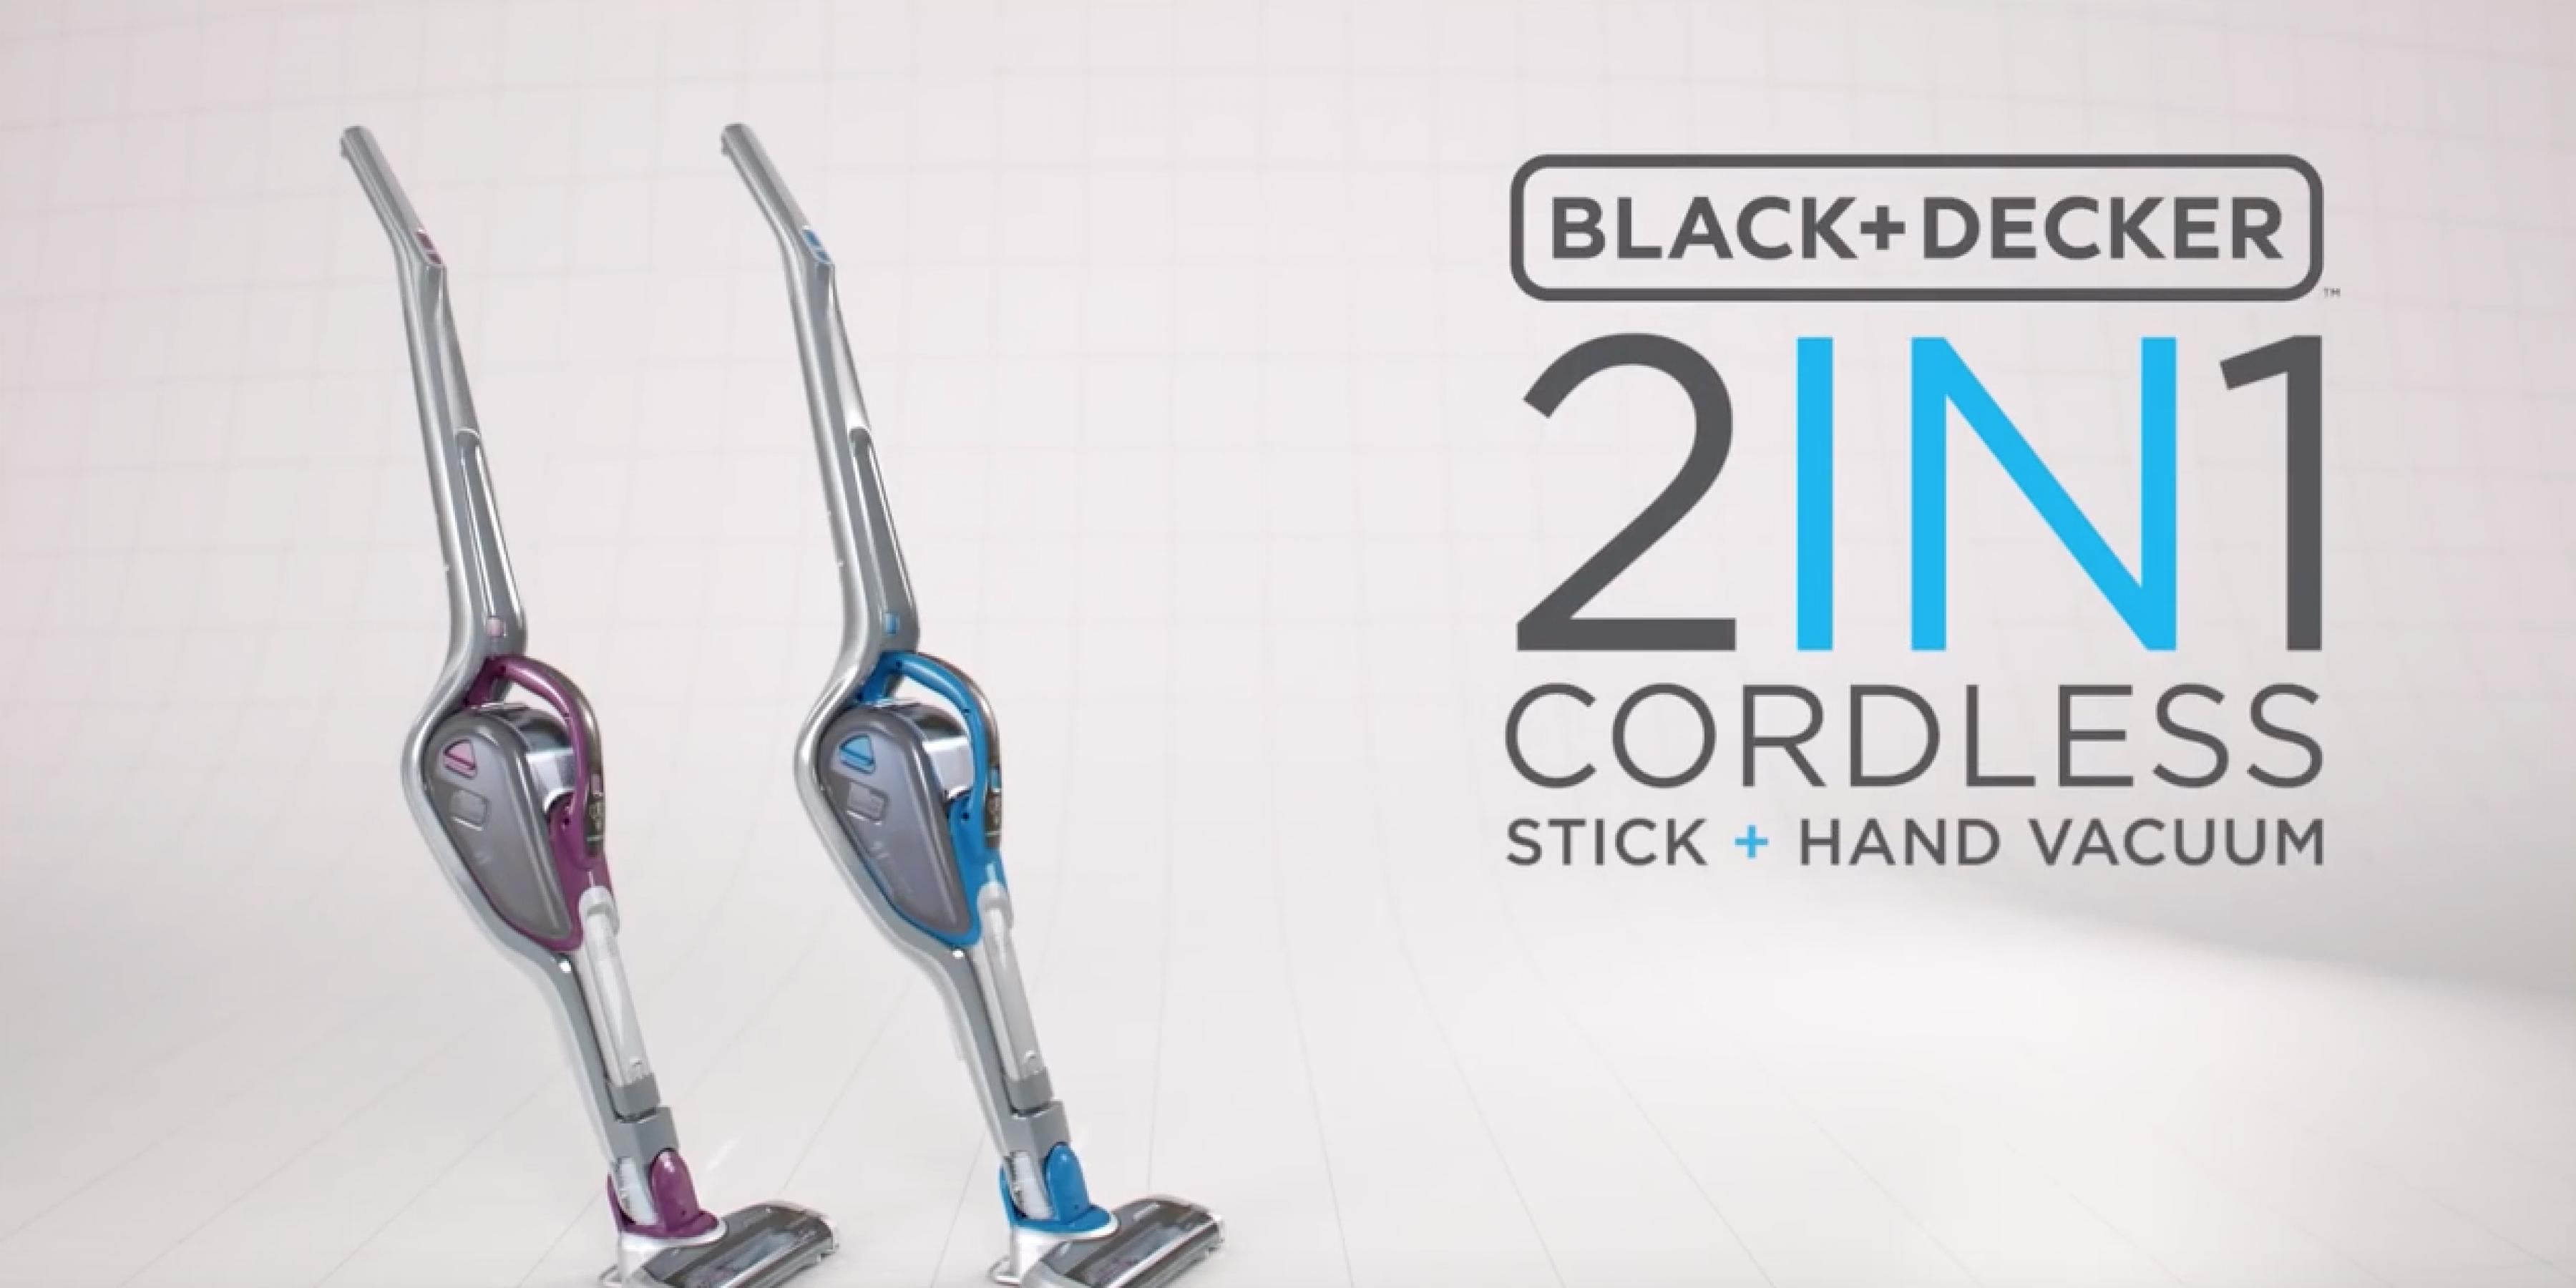 2-IN-1 Cordless Stick and Hand Vacuum - Clean Smarter, Not Harder